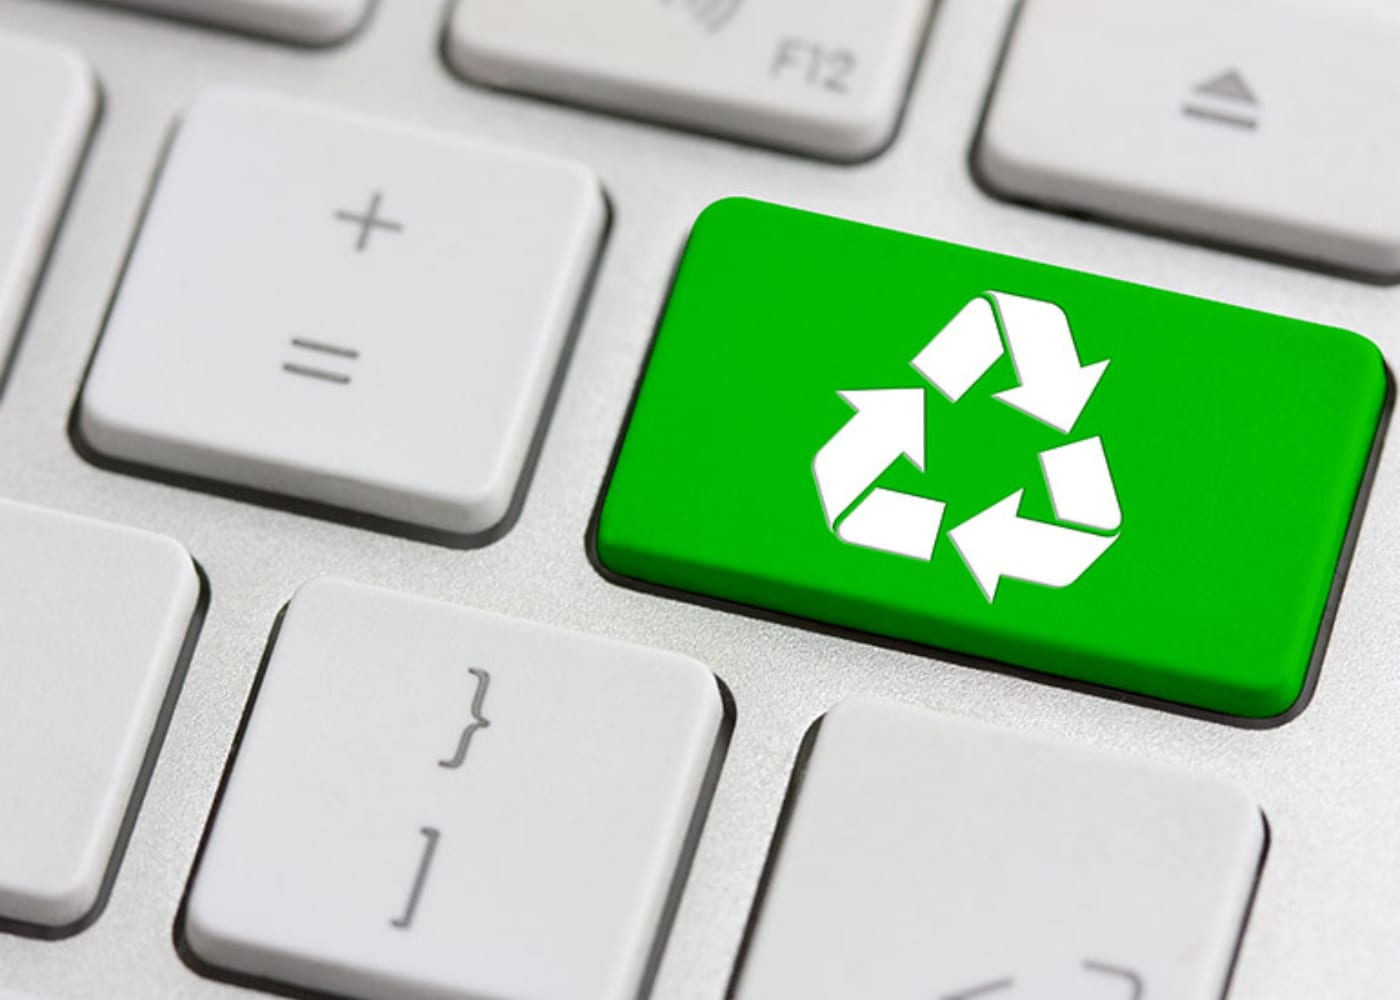 Recycling in Singapore: Where to dispose of batteries, appliances and e-waste